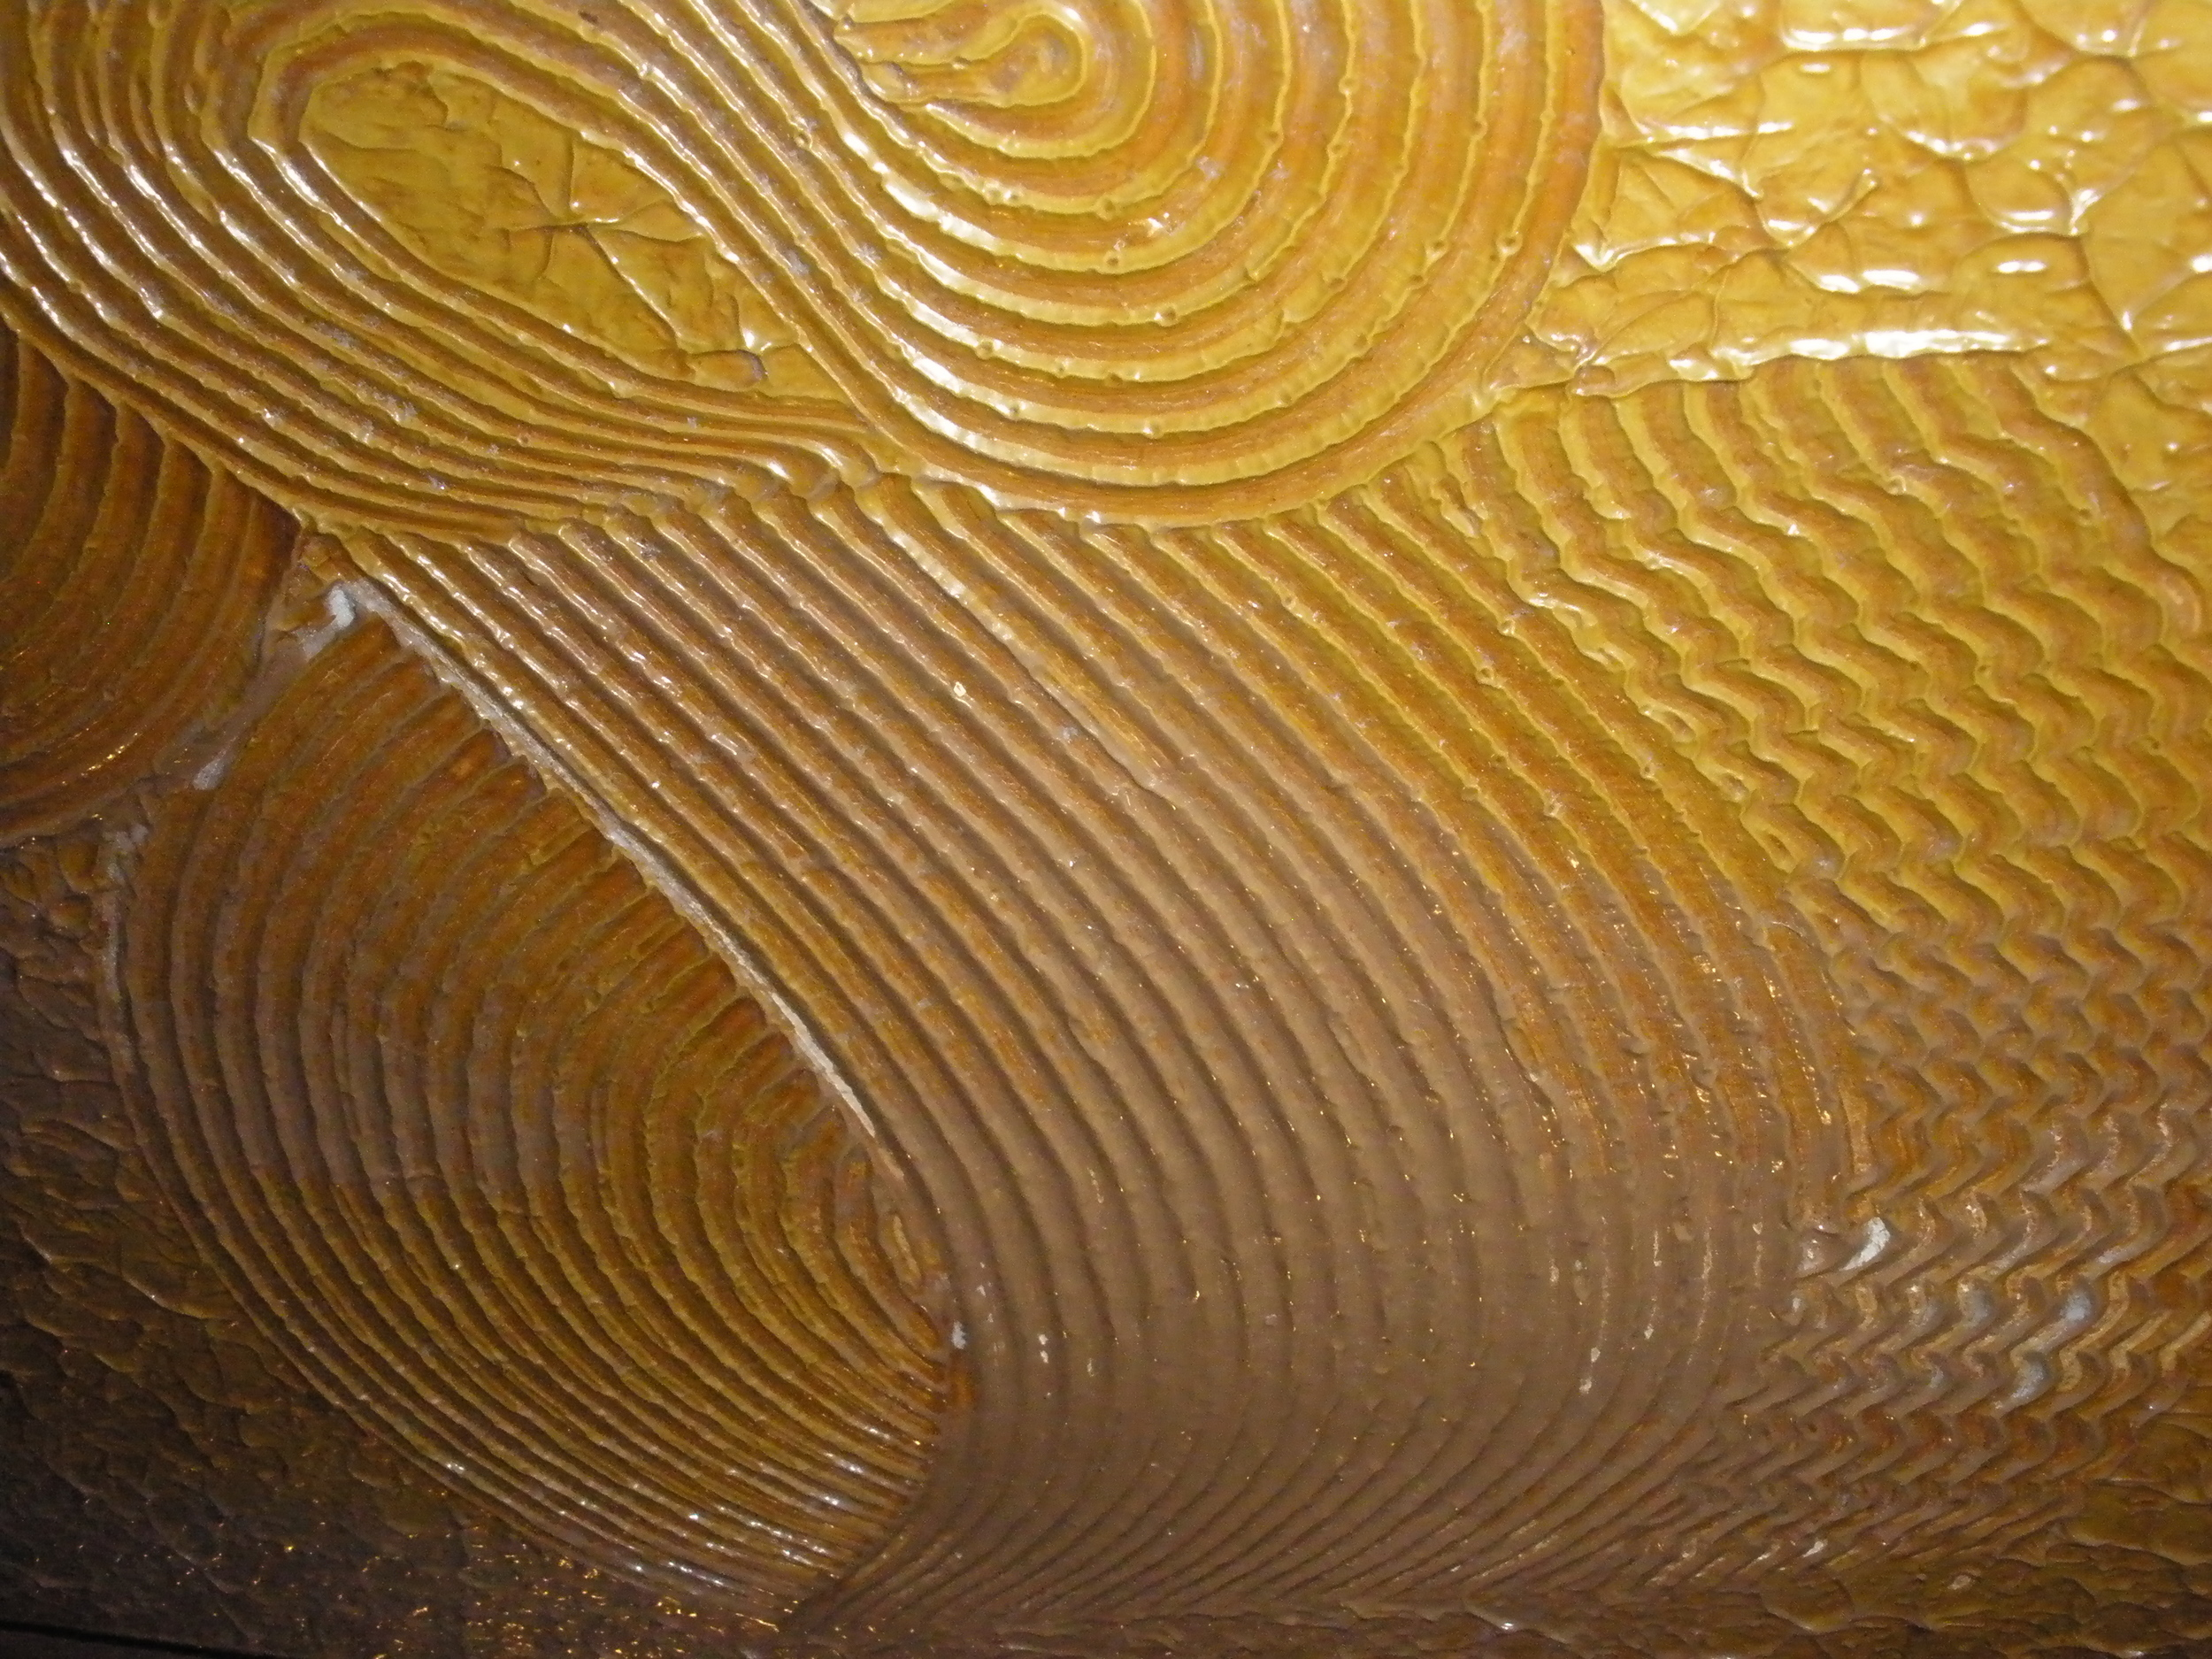 Detail of wall in the Copper King Mansion, the W.A. Clark home in Butte, Montana. Plaster was painted in swirls of gold in the entryway, bronze in the octagonal reception room, silver in the dining room, and copper in thebilliard room. c. Bill Dedman